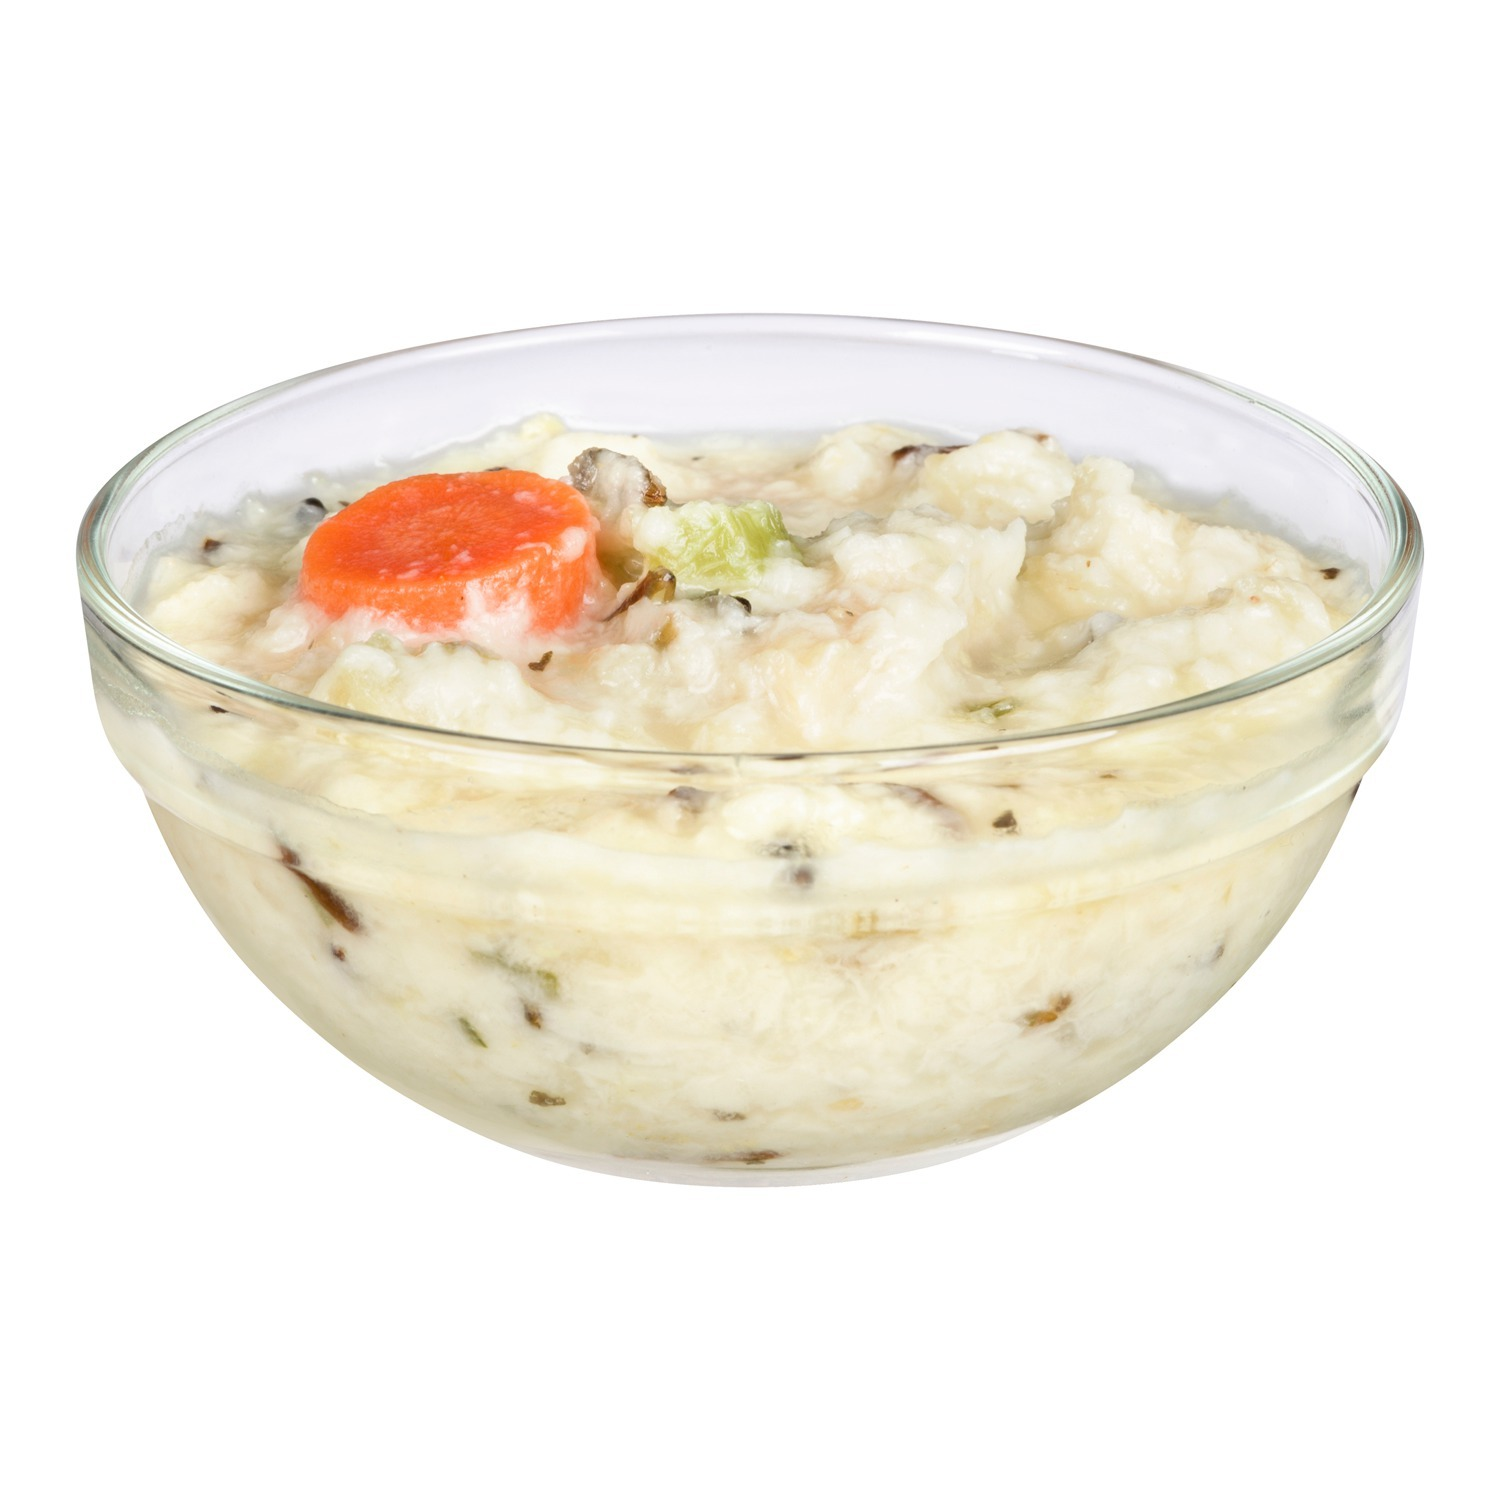 TRUESOUPS Cream Chicken Wild Rice Soup 8lb 4